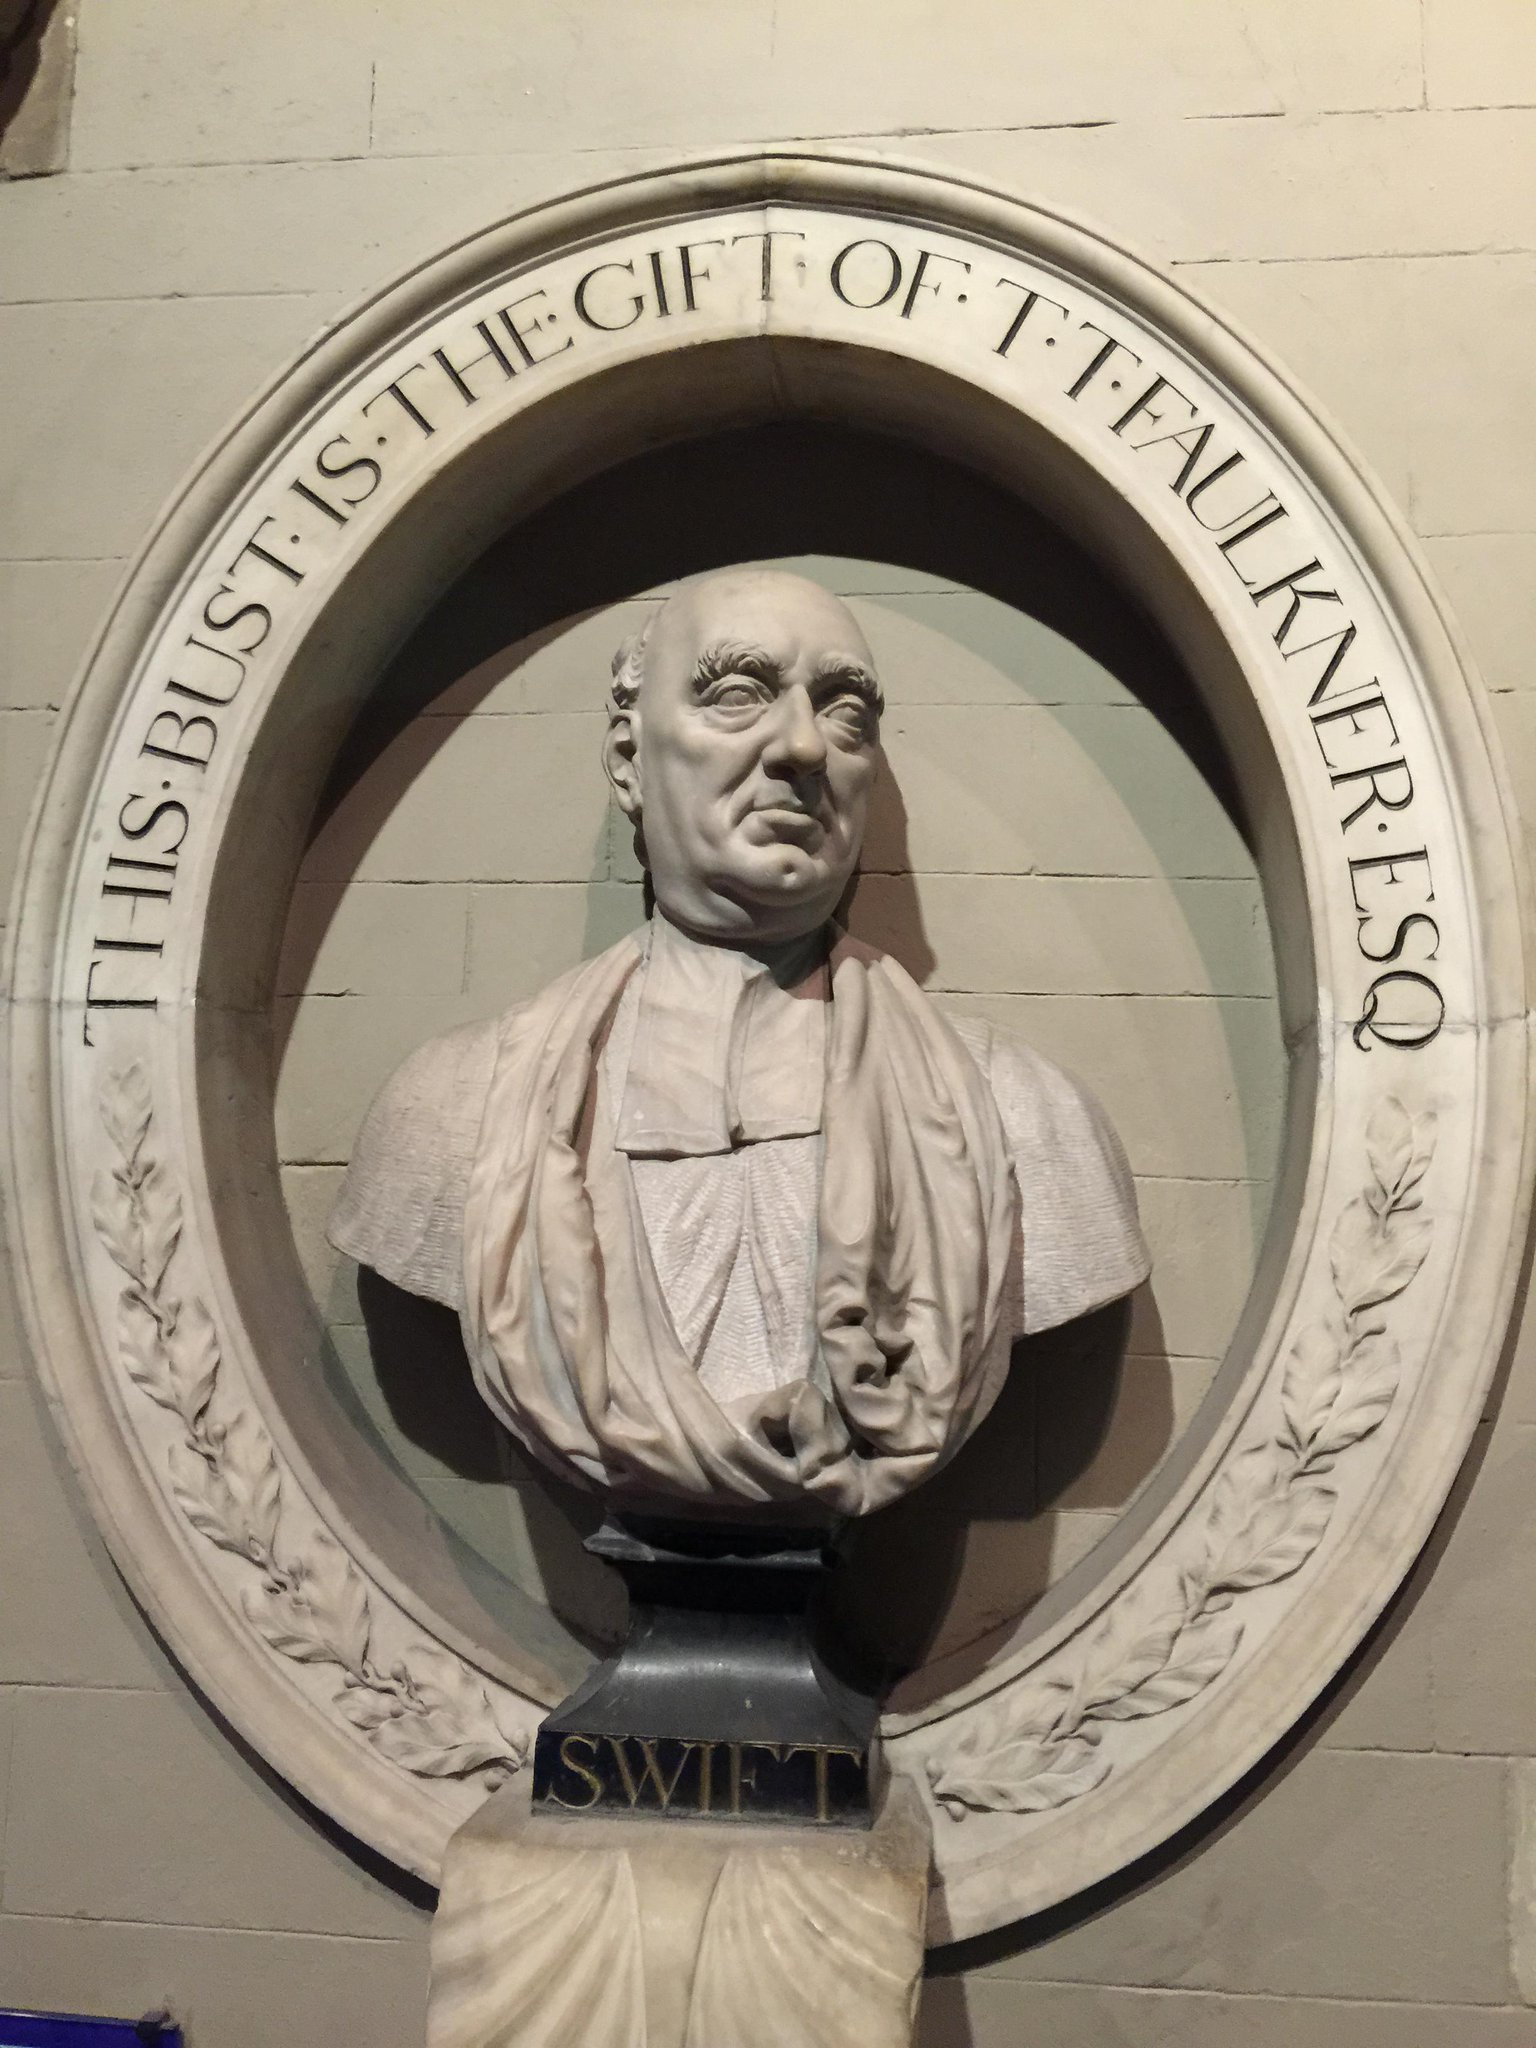 The marvellous Dr Swift memorialised in St. Patrick's Cathedral, Dublin… http://t.co/uL16H4Cdo3